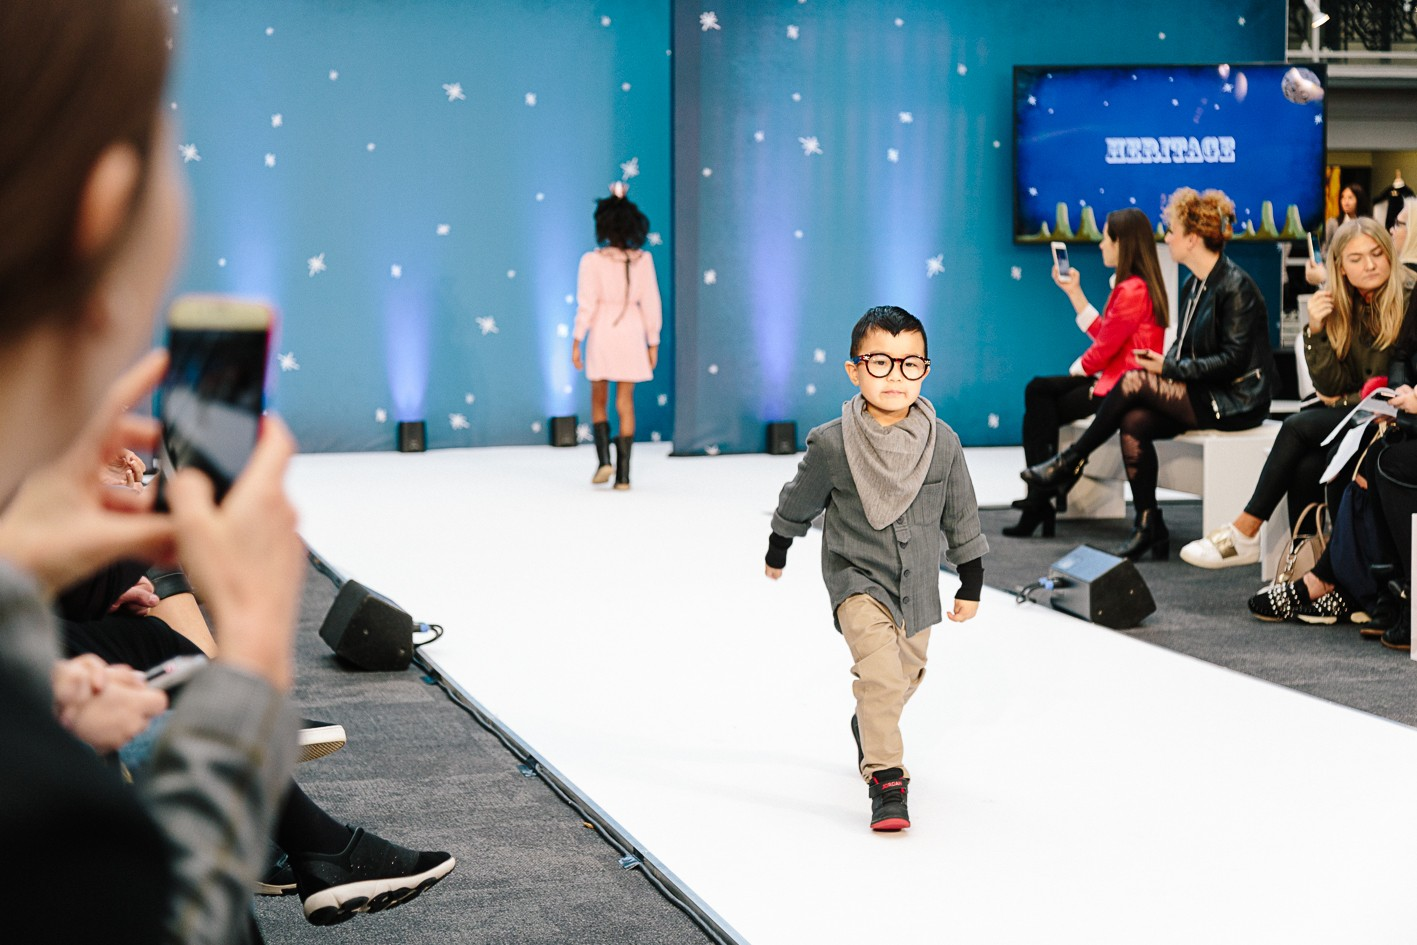 The Bubble runway show is back for 2018